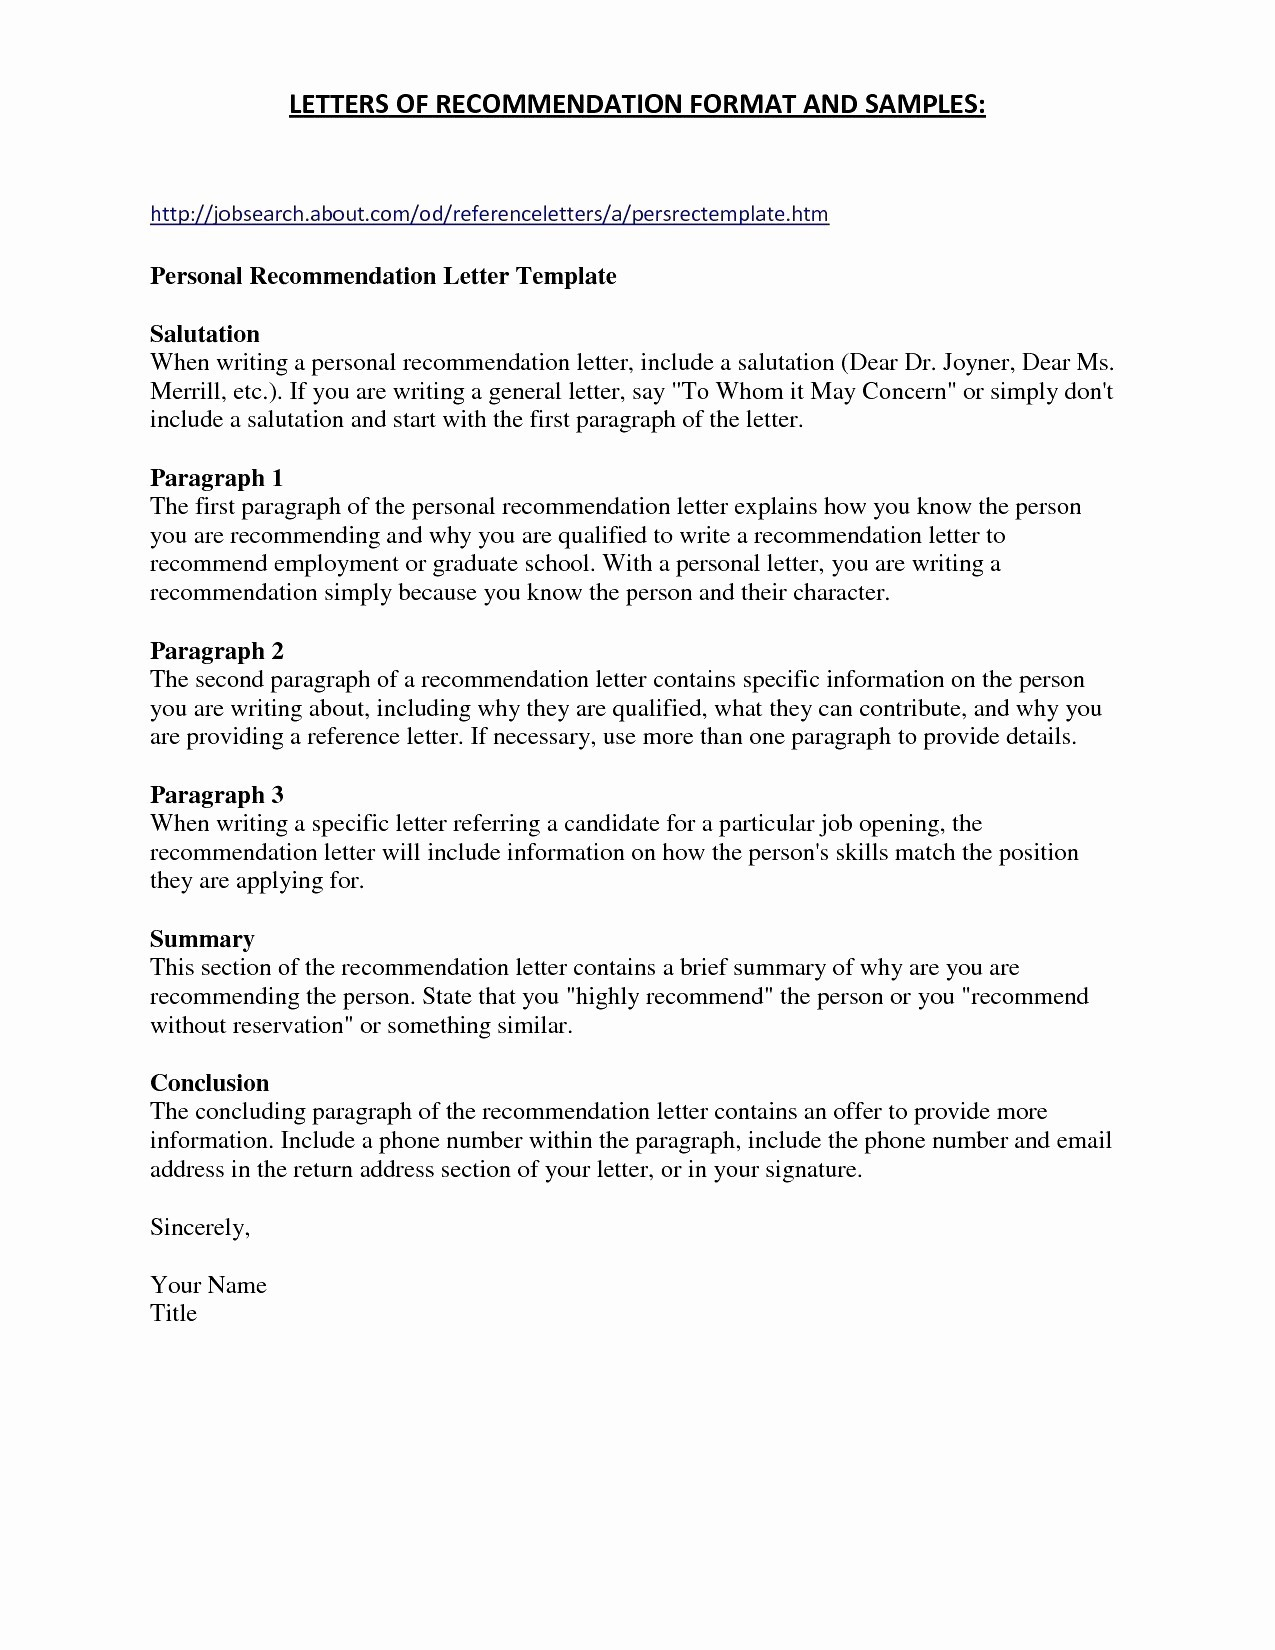 Electrical Engineering Resume - Mechanical Engineering Sample Resume Best Electrical Engineer Resume